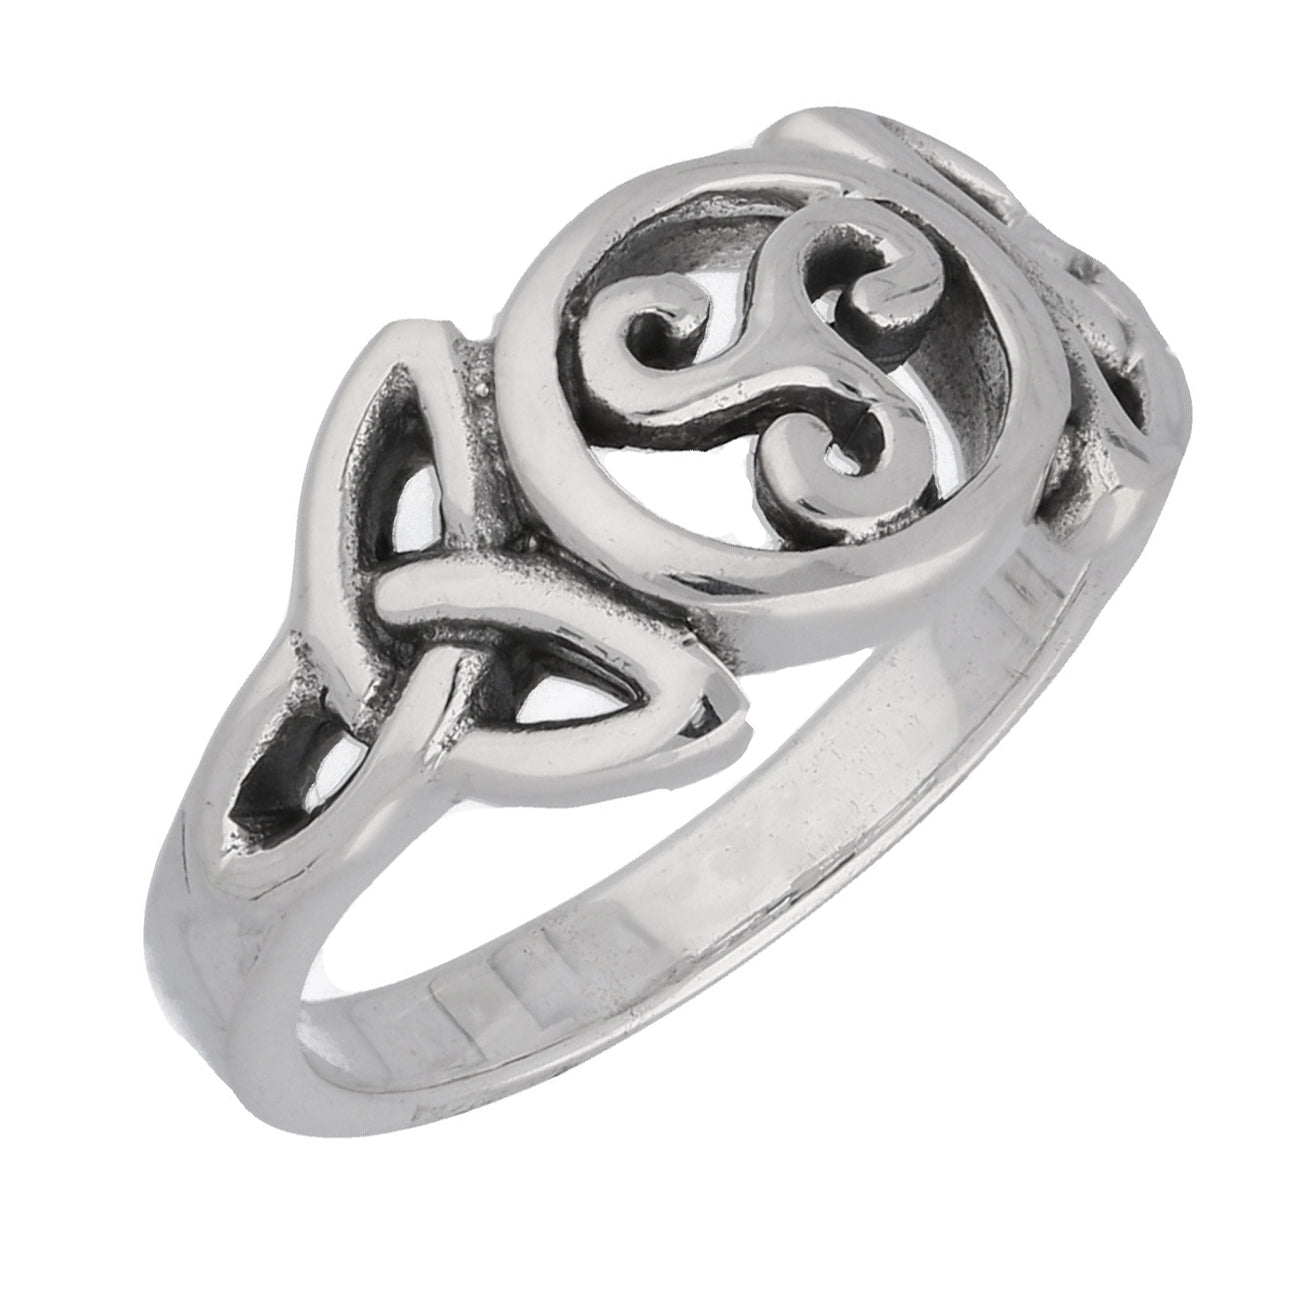 Triple Spiral Celtic Knot Triskele Trinity Sterling Silver Ring - Silver Insanity